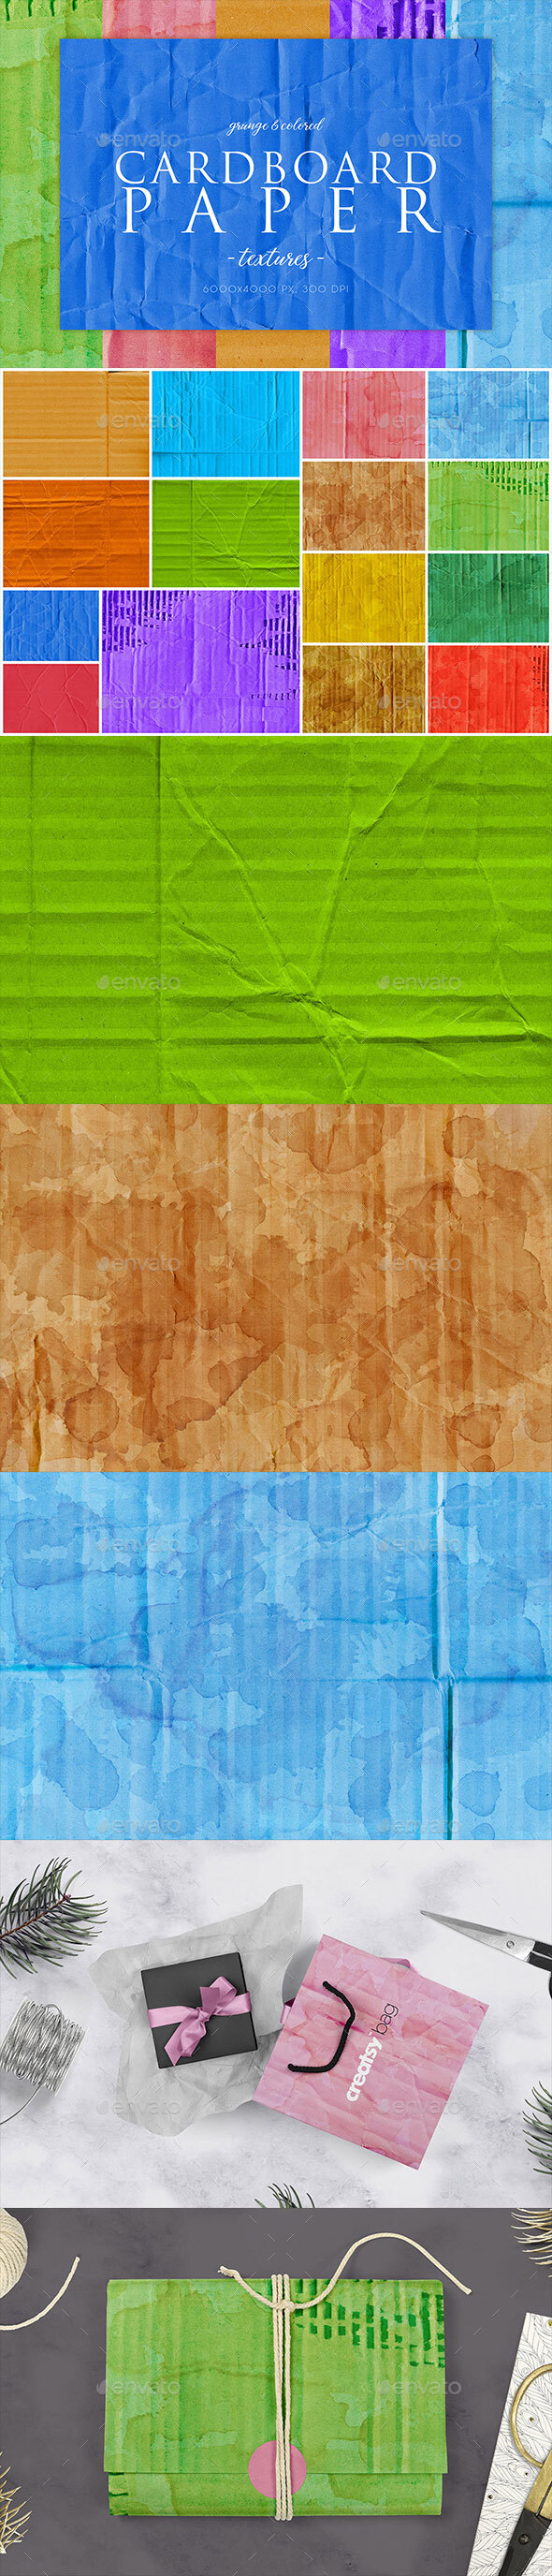 15 Colorful Cardboard Paper Textures 1